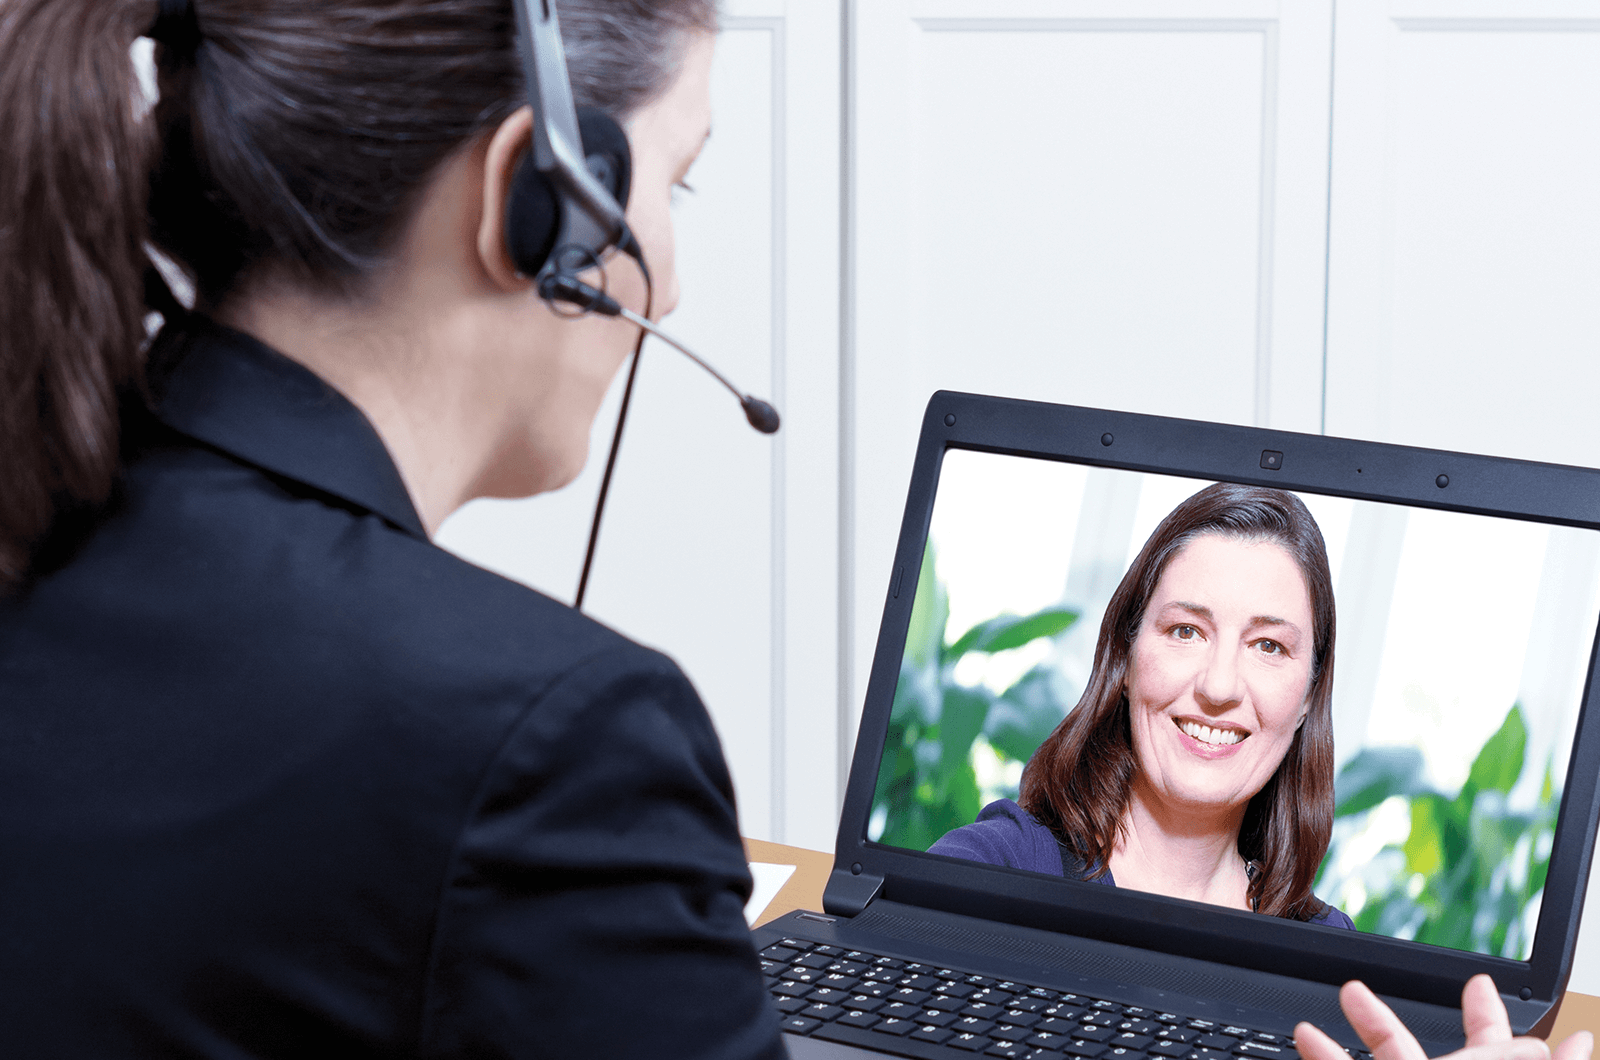 Woman wearing headset interviewing with another woman on laptop